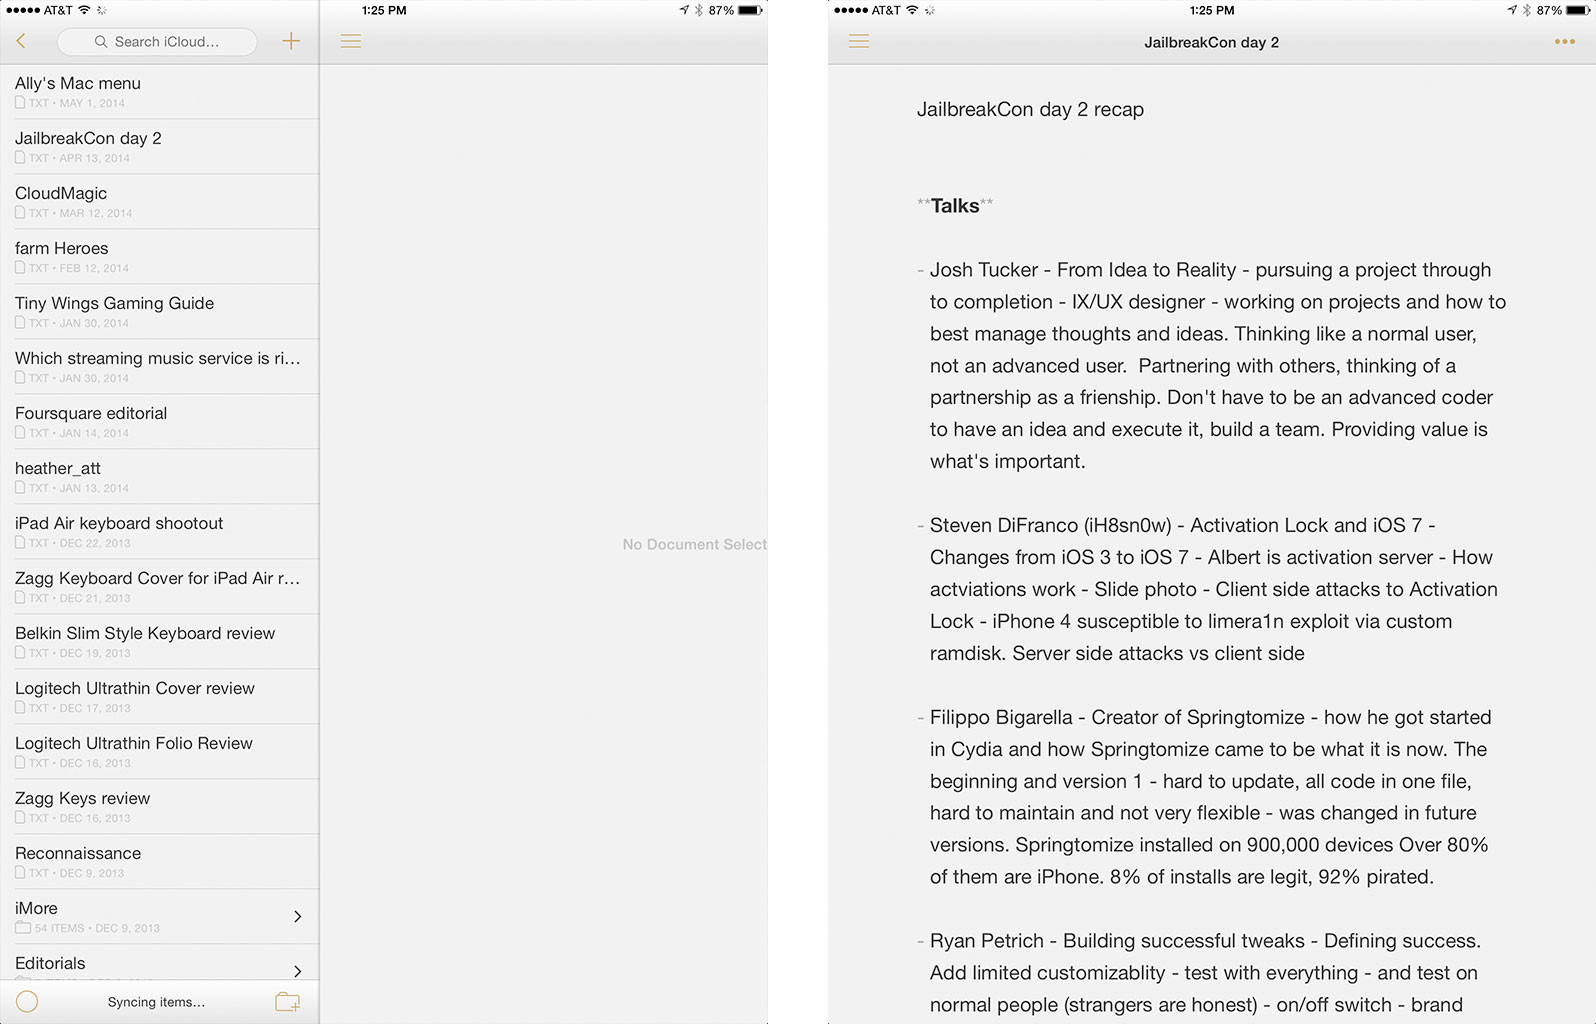 Best text editing apps for iPad: Byword